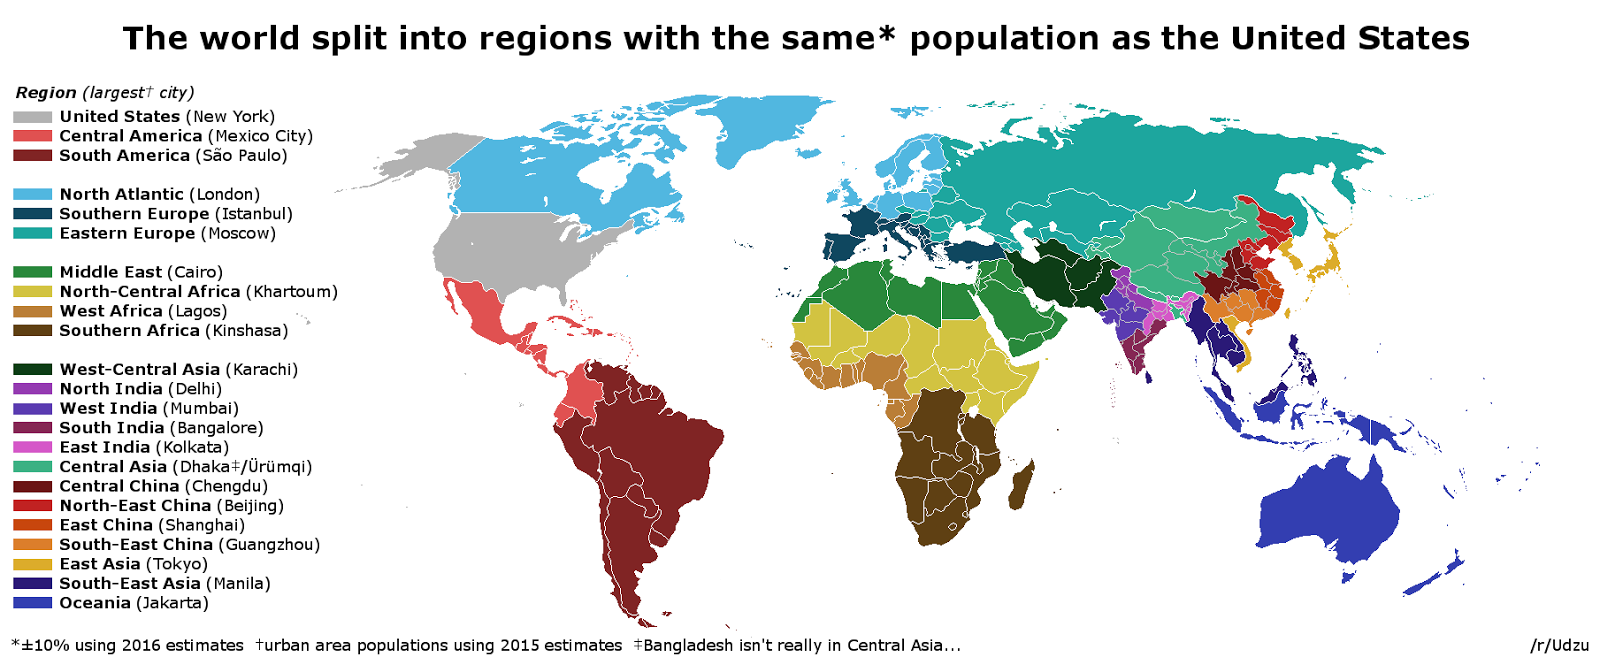 the world split into regions with the same population as the us